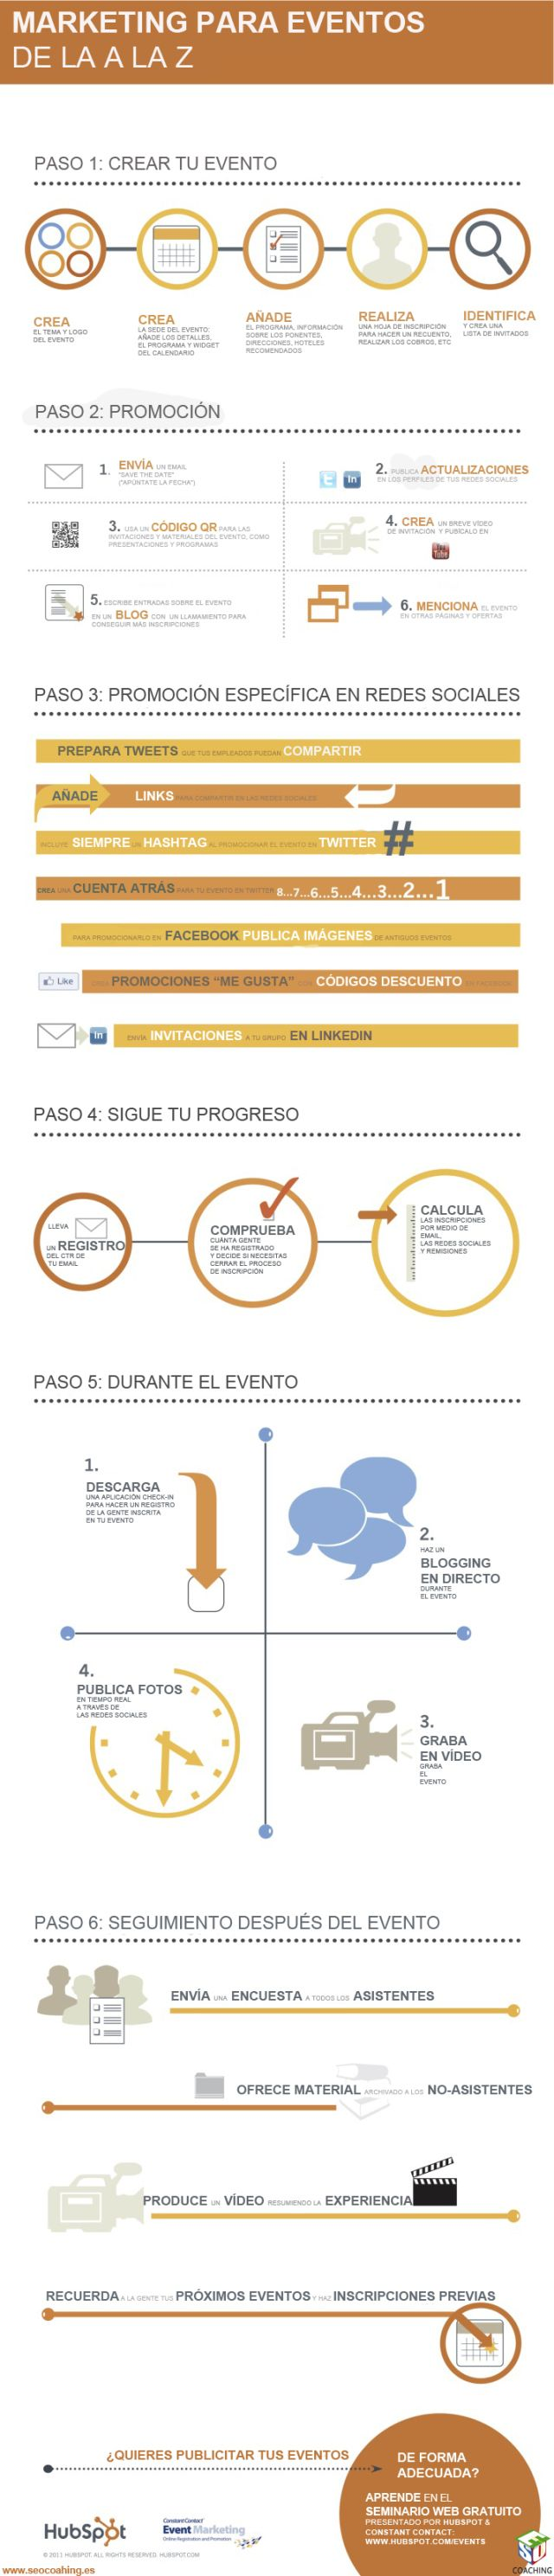 #Infografia #Marketing para eventos de la A a la Z #TAVnews